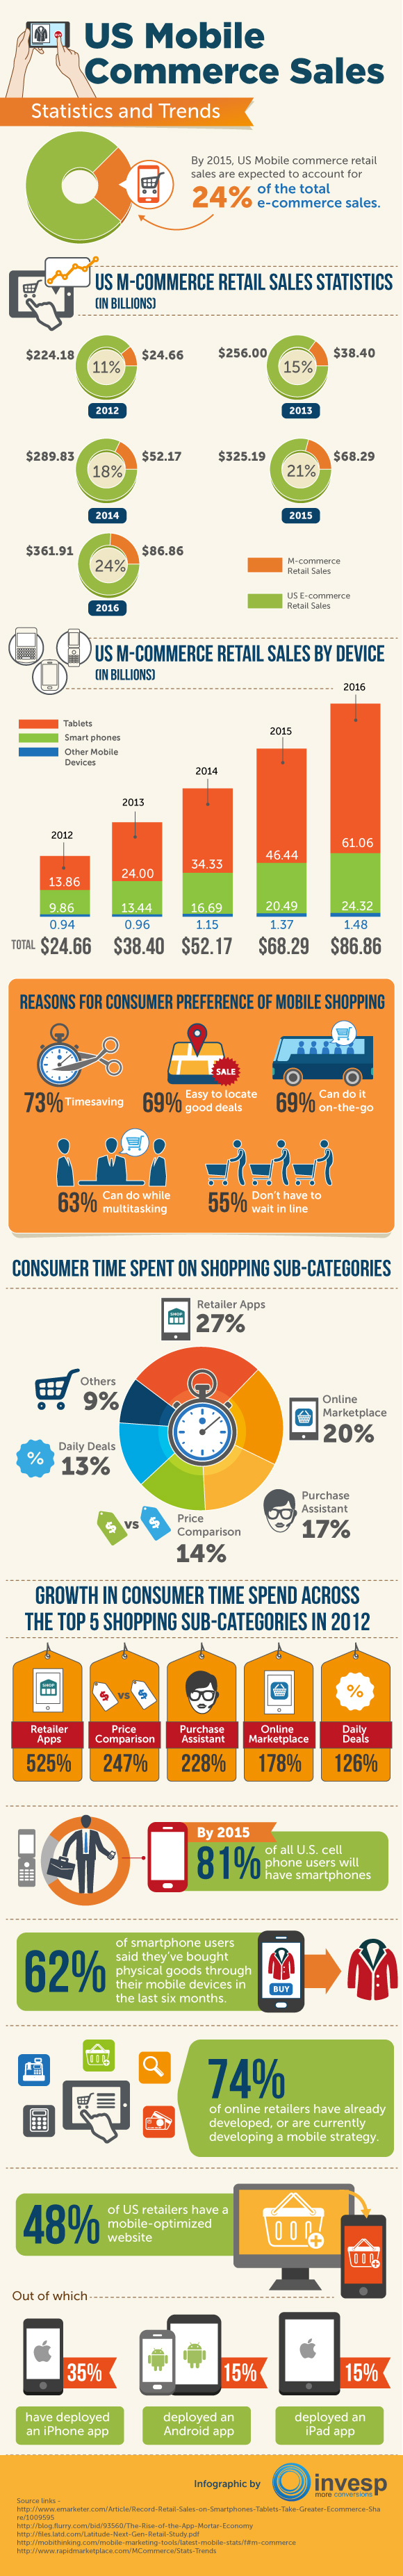 us-mobile-commerce-sales--statistics-and-trends_5188cd872e628